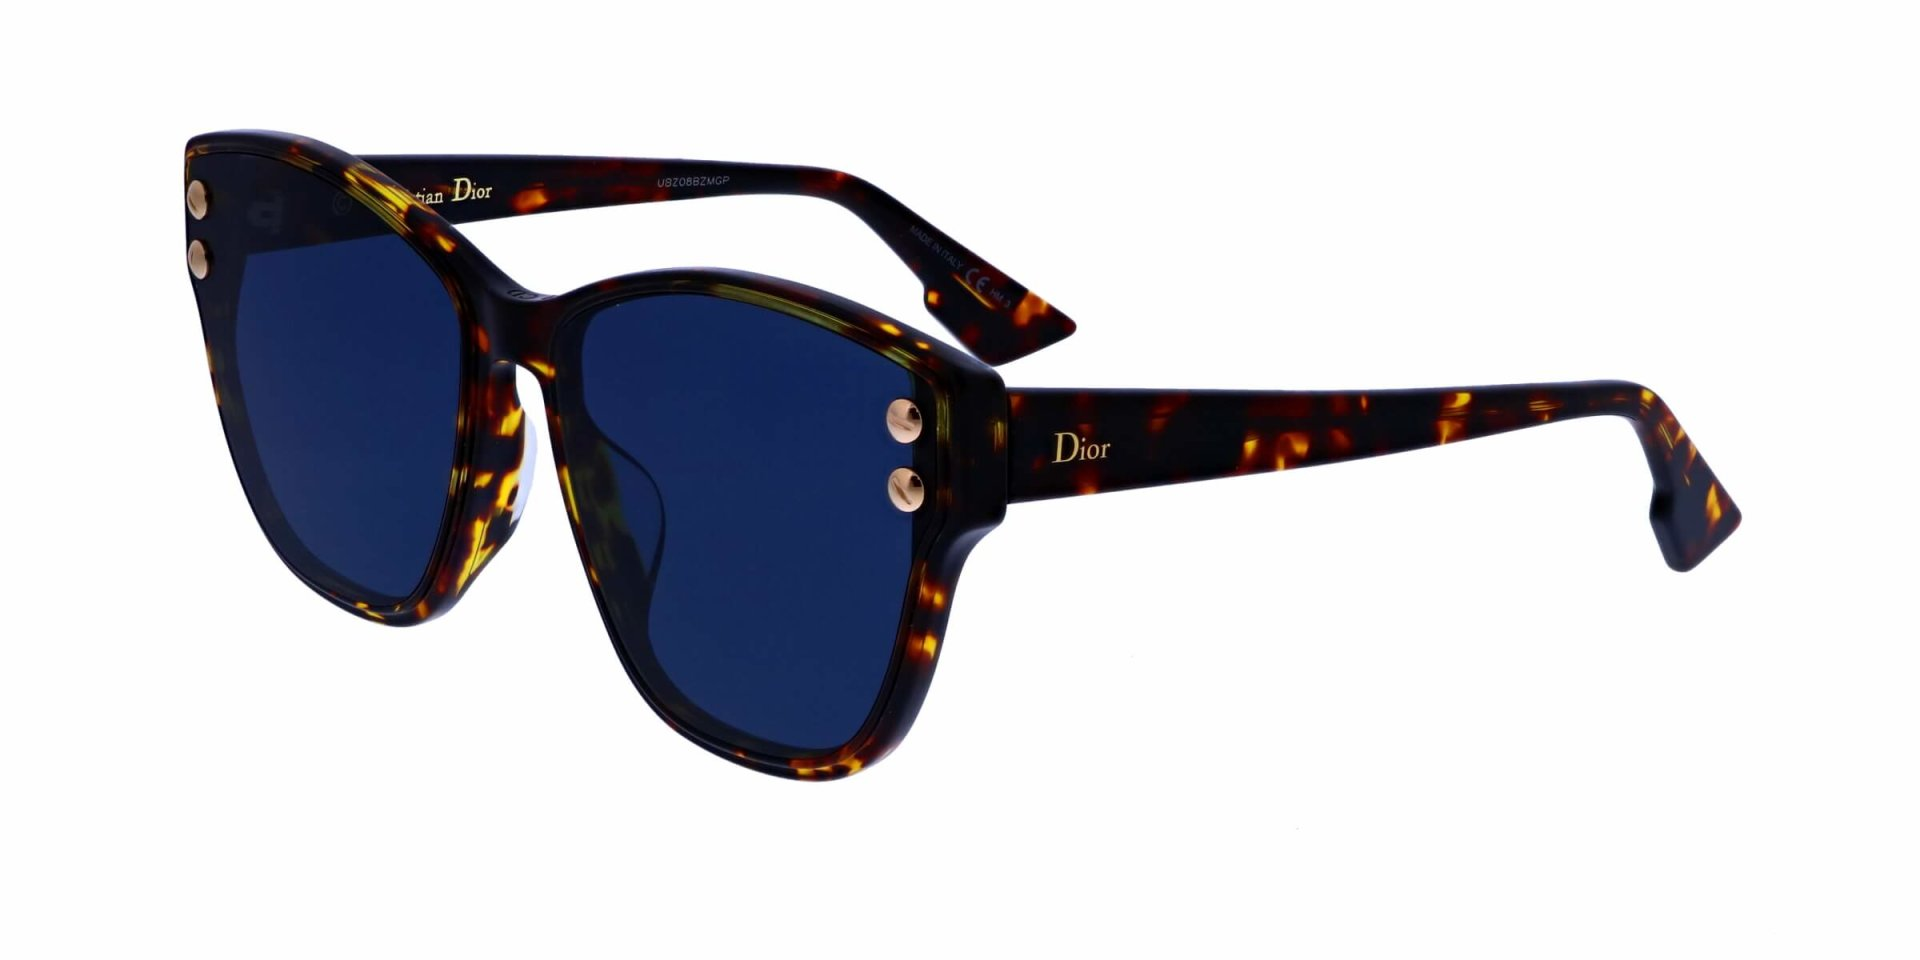 499c1083d4fb Details about NEW Christian Dior ADDICT3F P65A9 Havana Blue Sunglasses